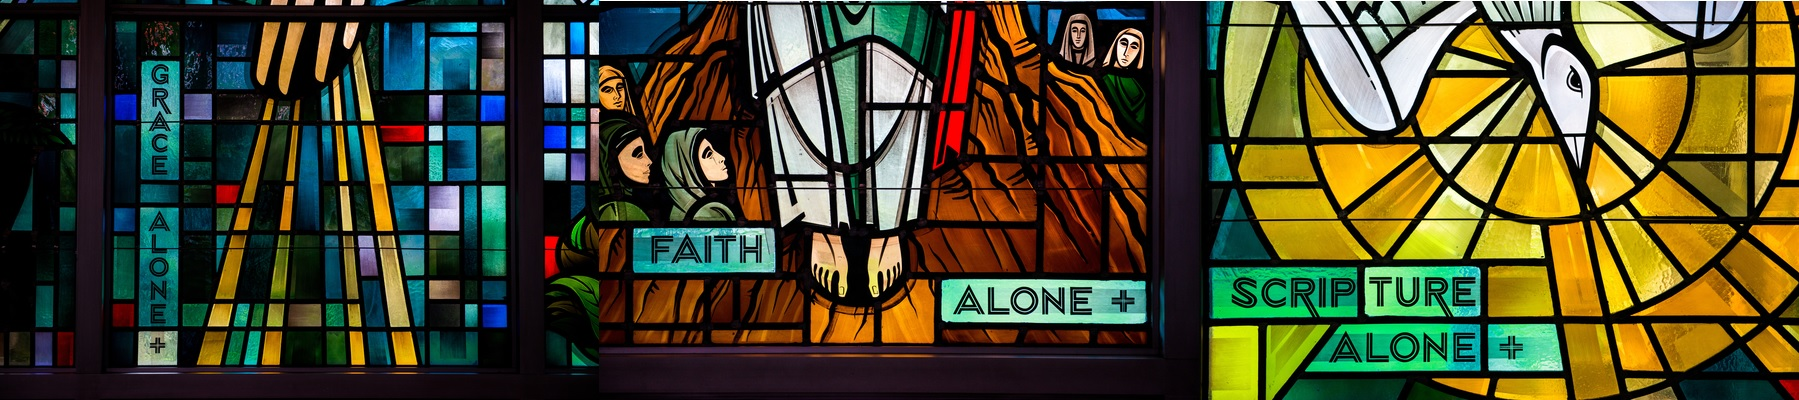 Lutheran Christian beliefs, Grace Alone, Faith Alone, Scripture Alone